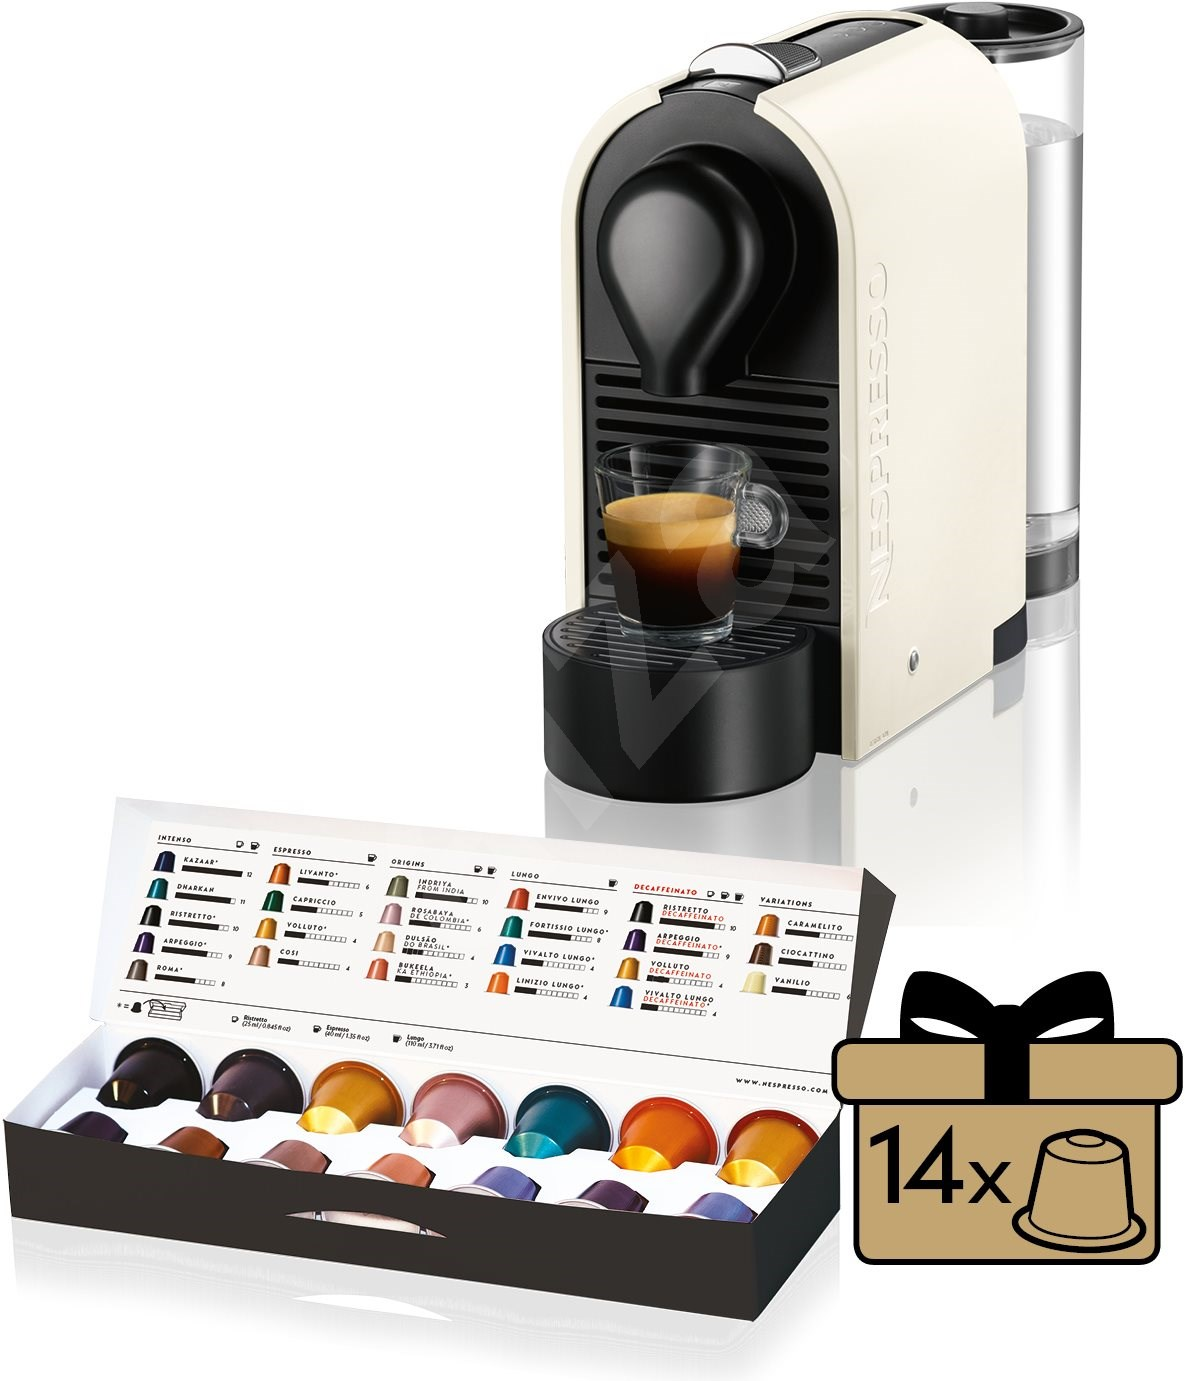 espresso nespresso krups u xn250110 automatic coffee machine. Black Bedroom Furniture Sets. Home Design Ideas